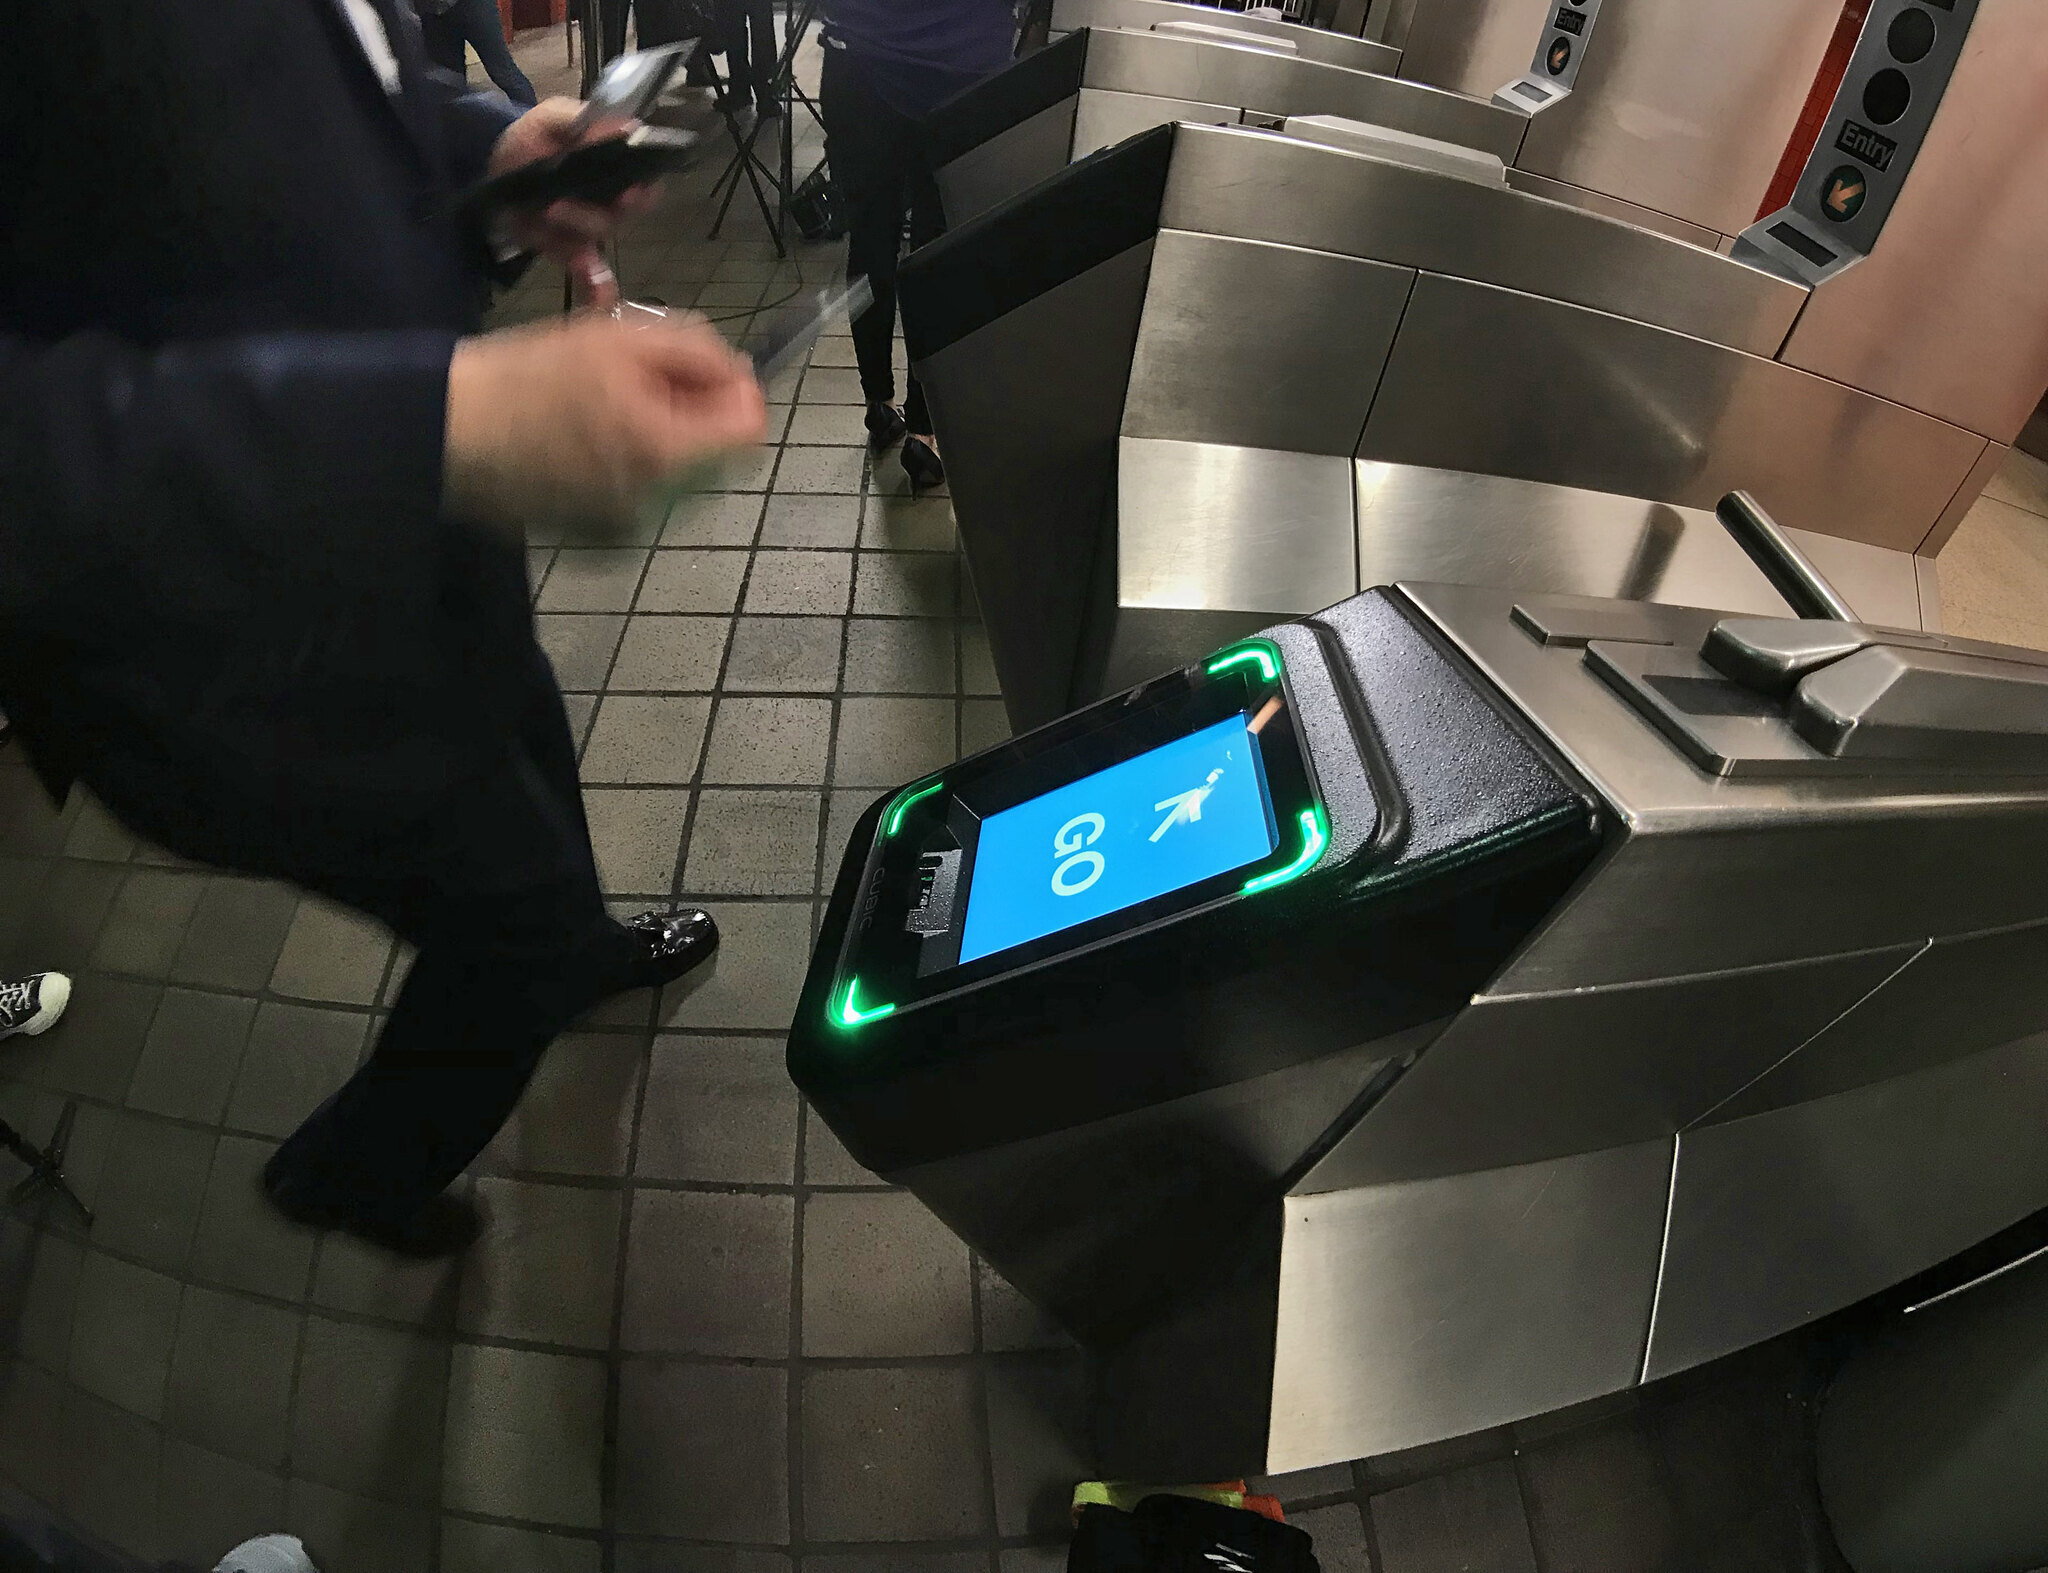 Most NYC subway stations now have OMNY scanners to replace MetroCards